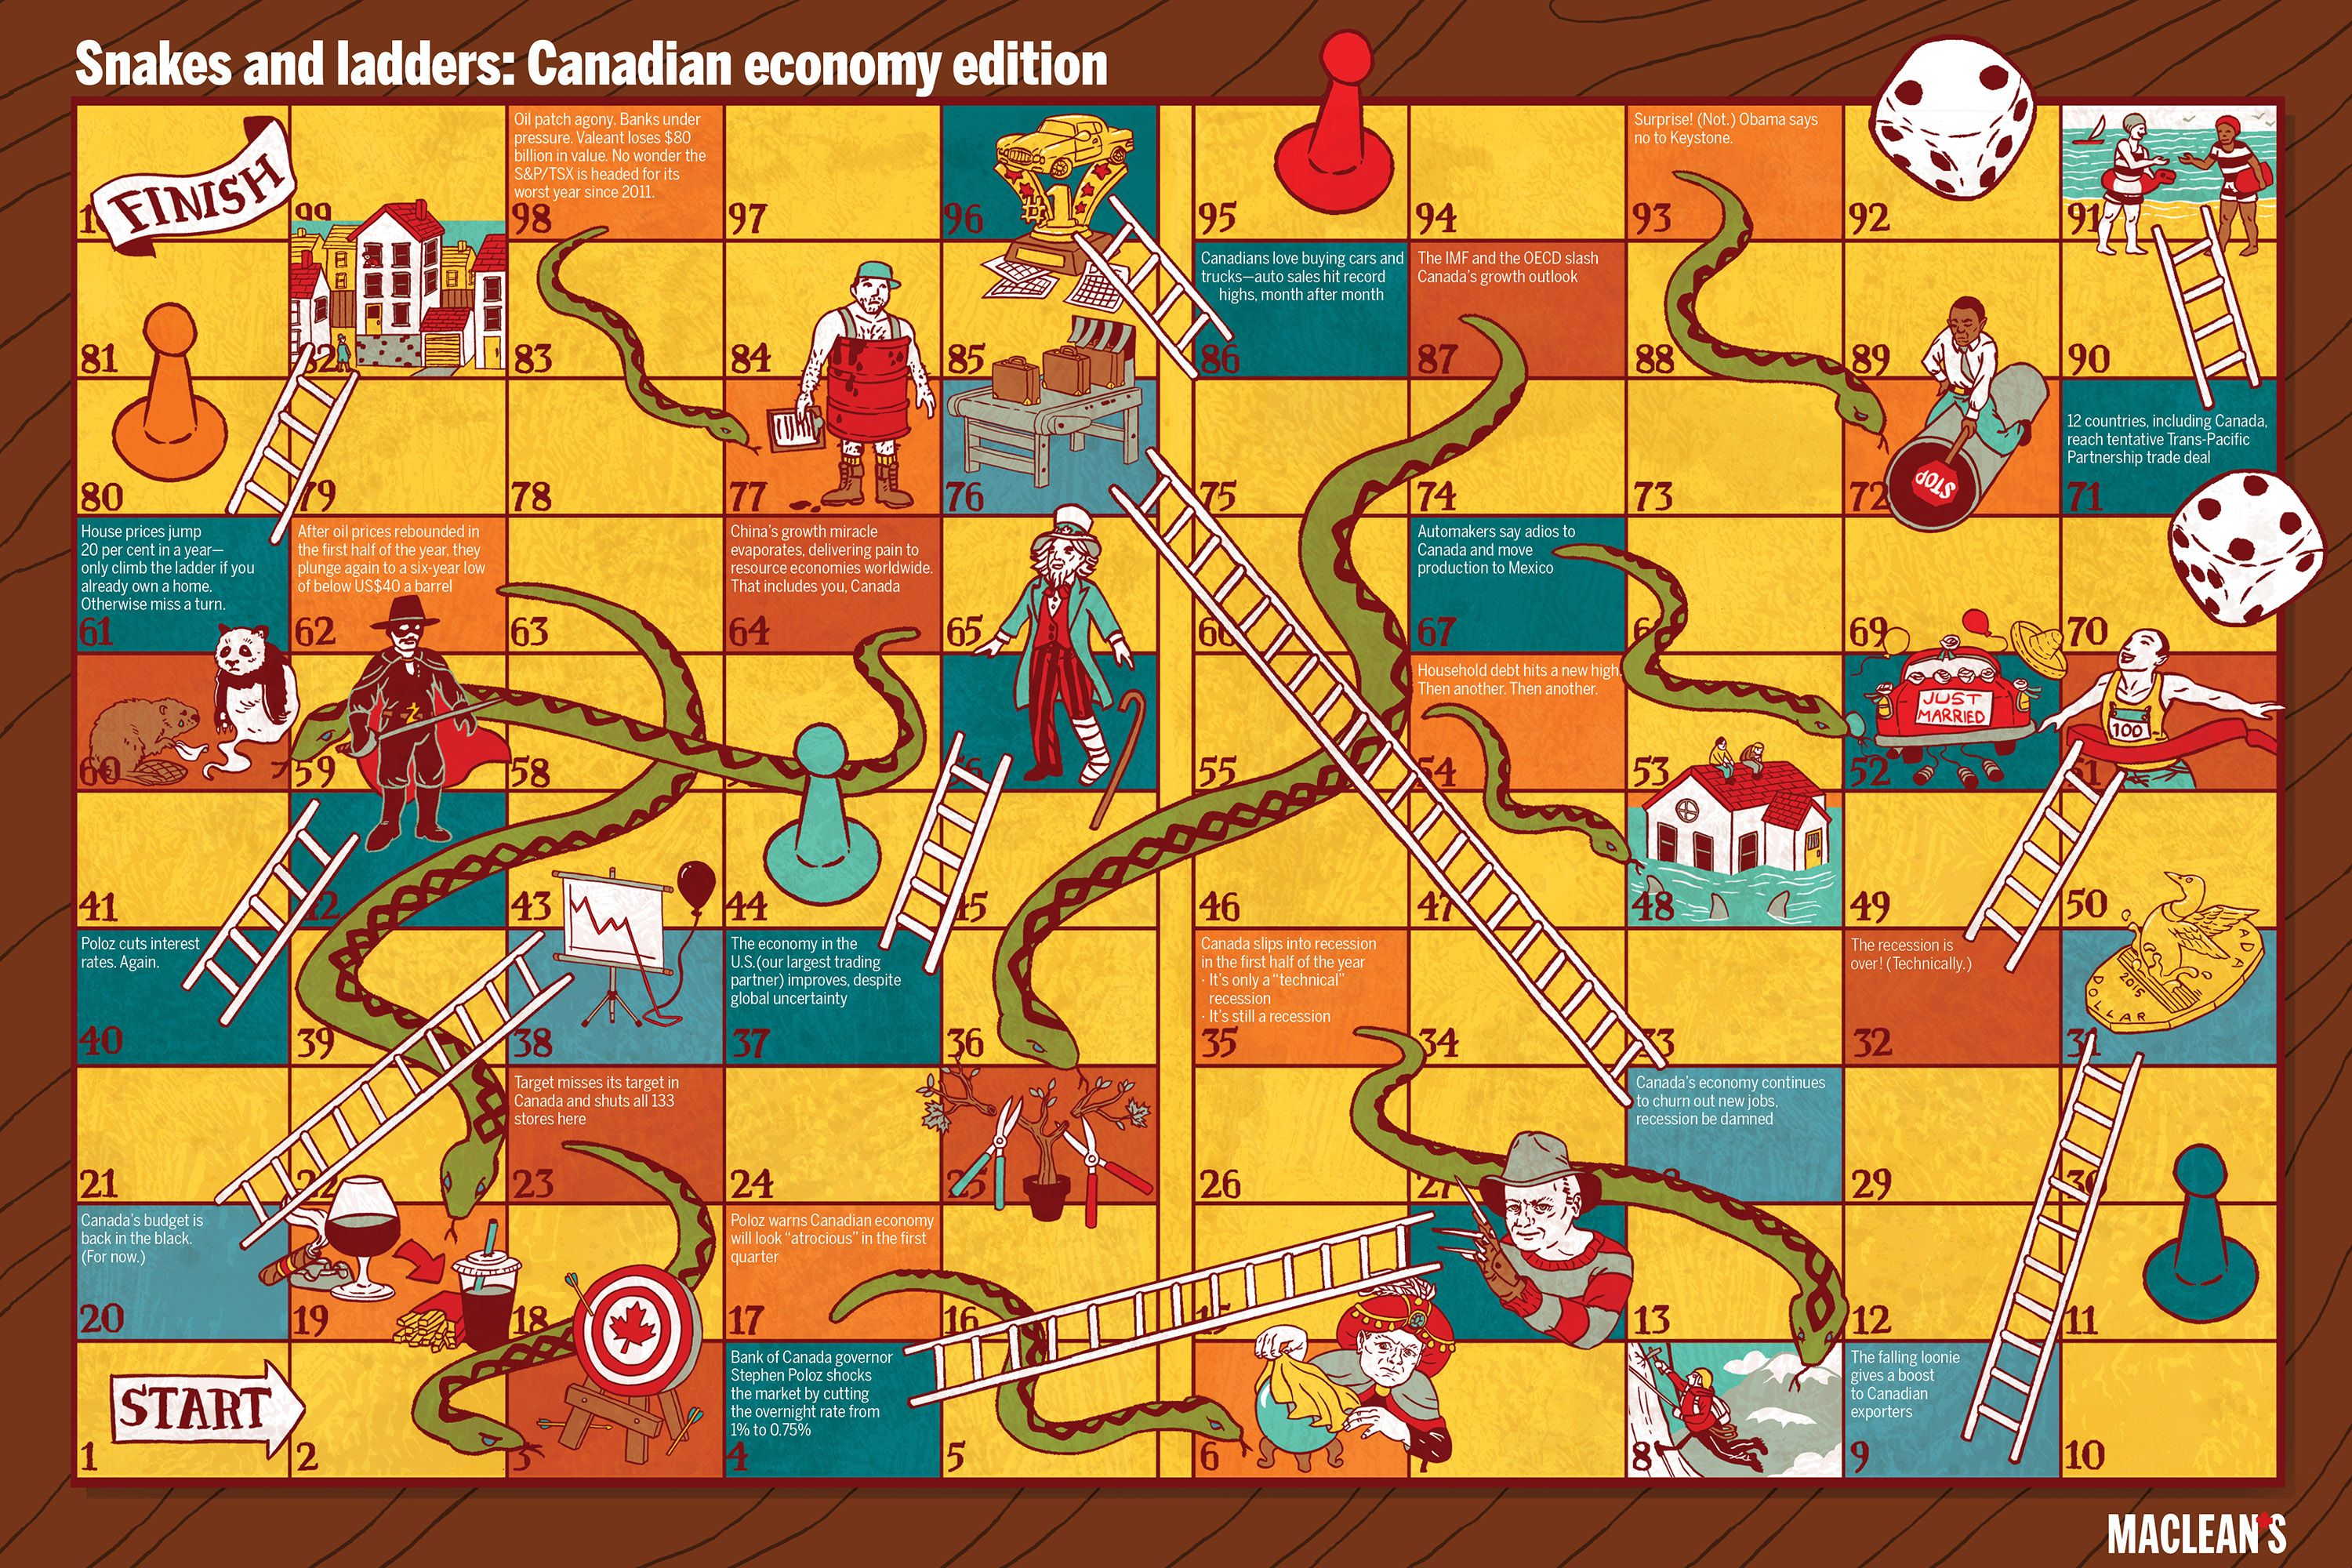 snakes and ladders mcleans.ca the canadian economy edition